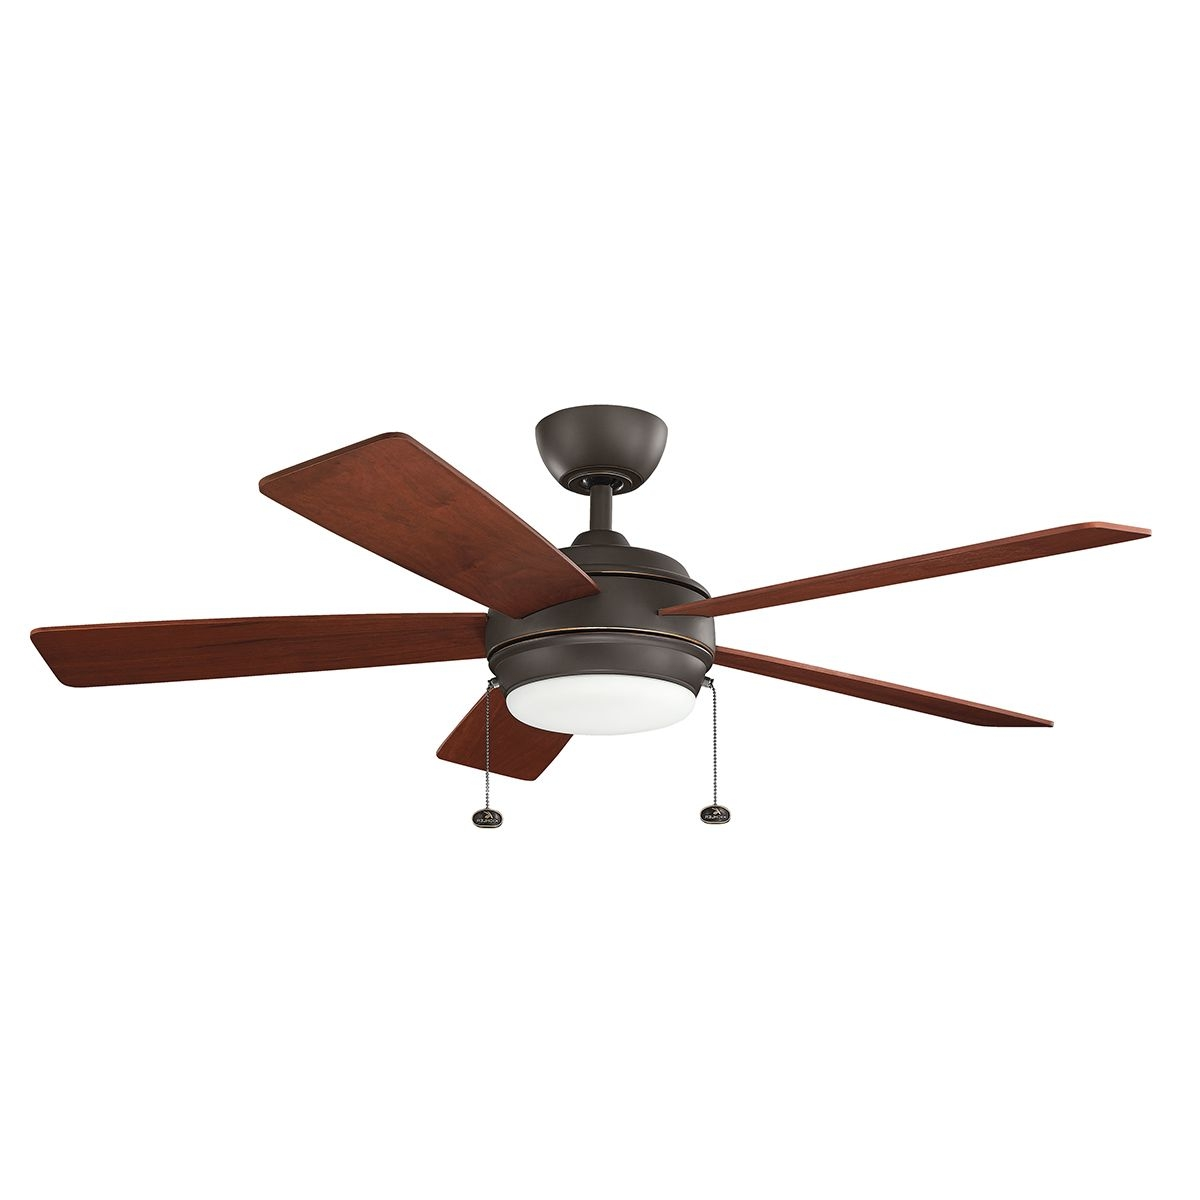 Kmart Outdoor Ceiling Fans Within Most Recently Released Hugger 52 In Black Ceiling Fan Awesome Modern White Ceiling Fans (View 7 of 20)